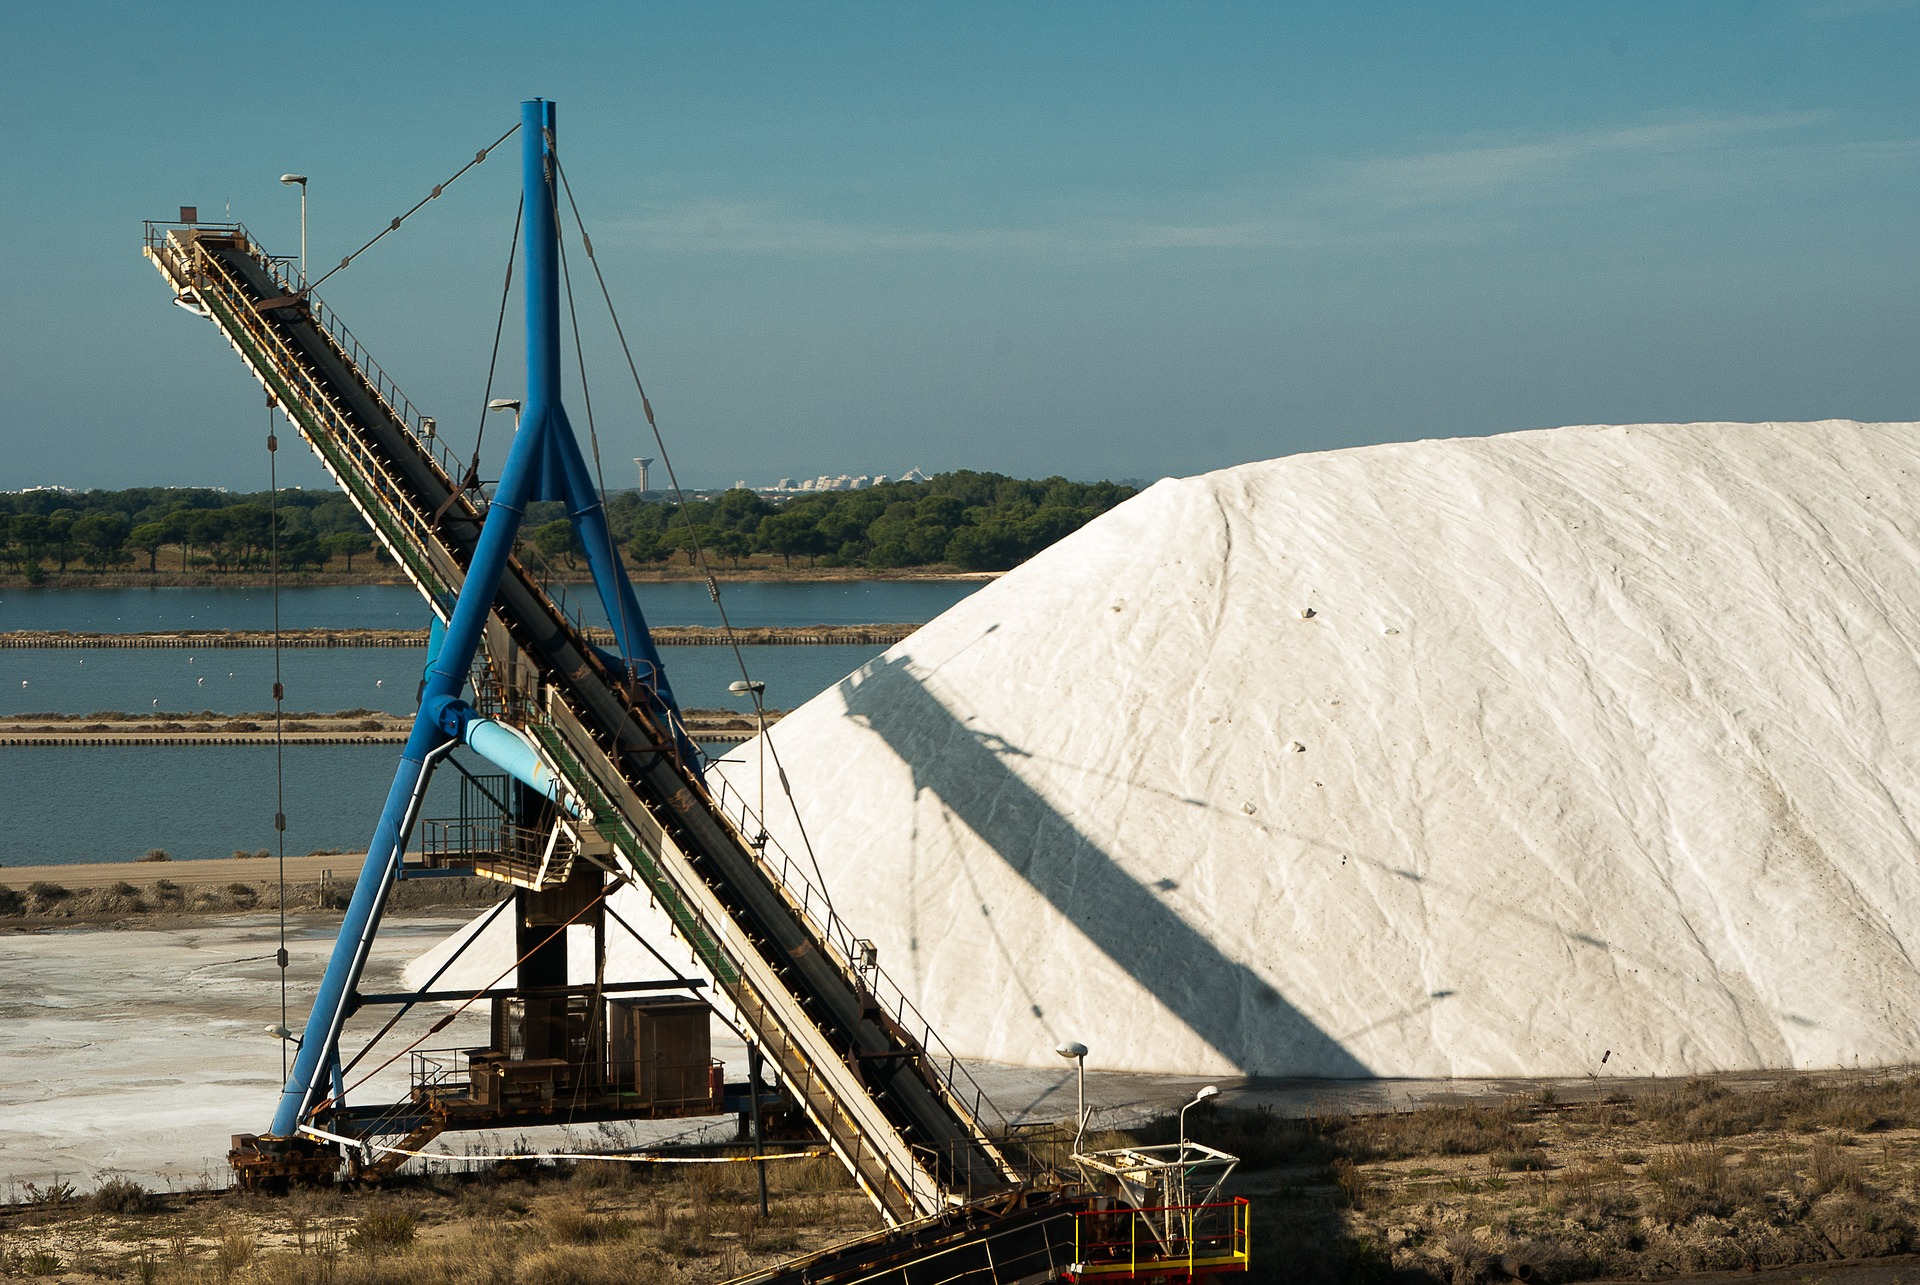 Salt harvesting since prehistoric times in Camargue, France